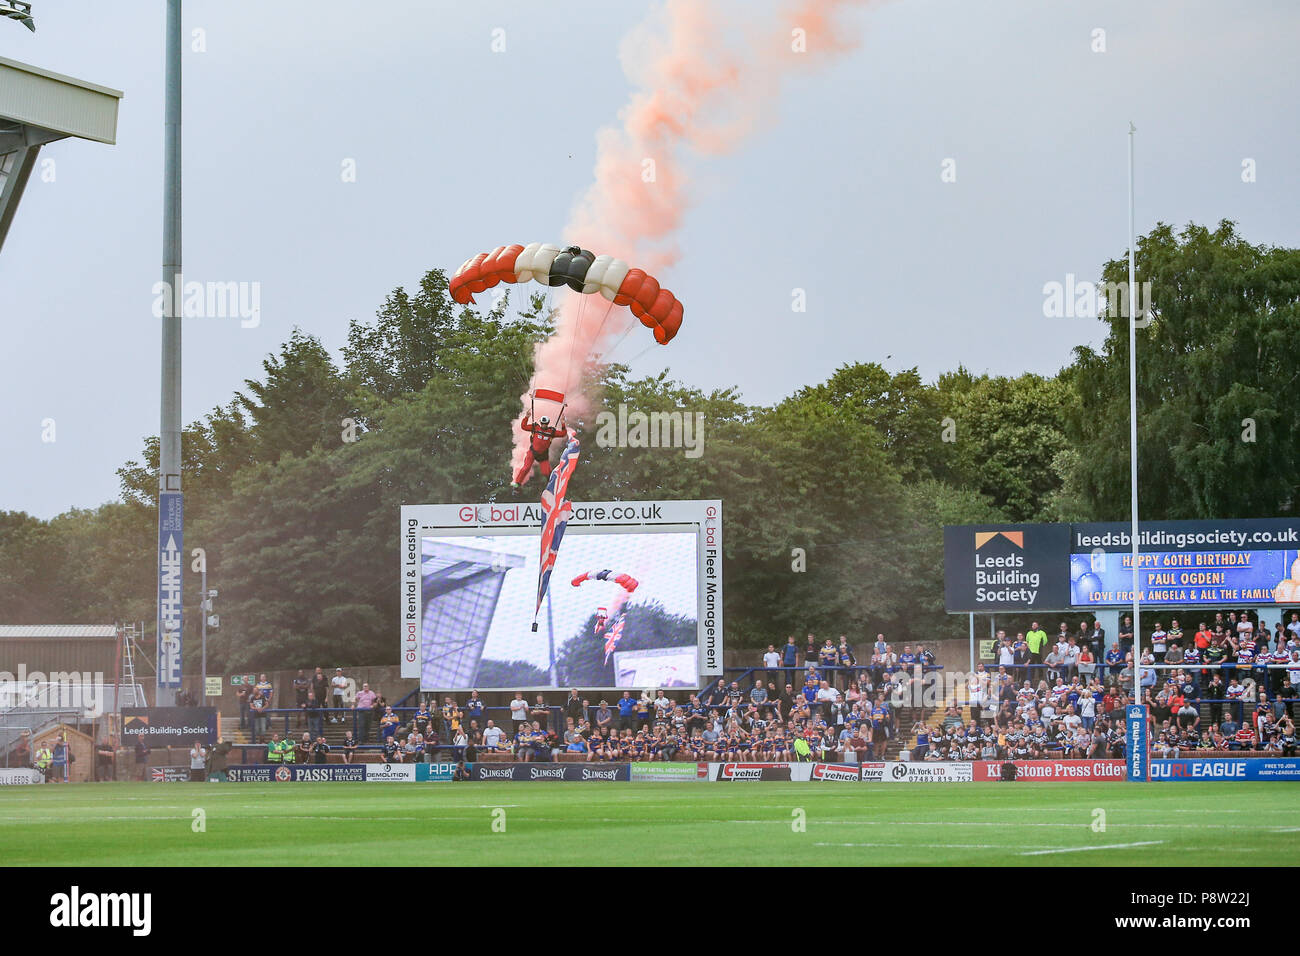 Friday 13th July 2018 , Emerald Headingley Stadium, Leeds, England; Betfred Super League, Leeds Rhinos v Wakefield Trinity;Army's Red Devils drop on as part of armed forces day Credit: News Images /Alamy Live News - Stock Image